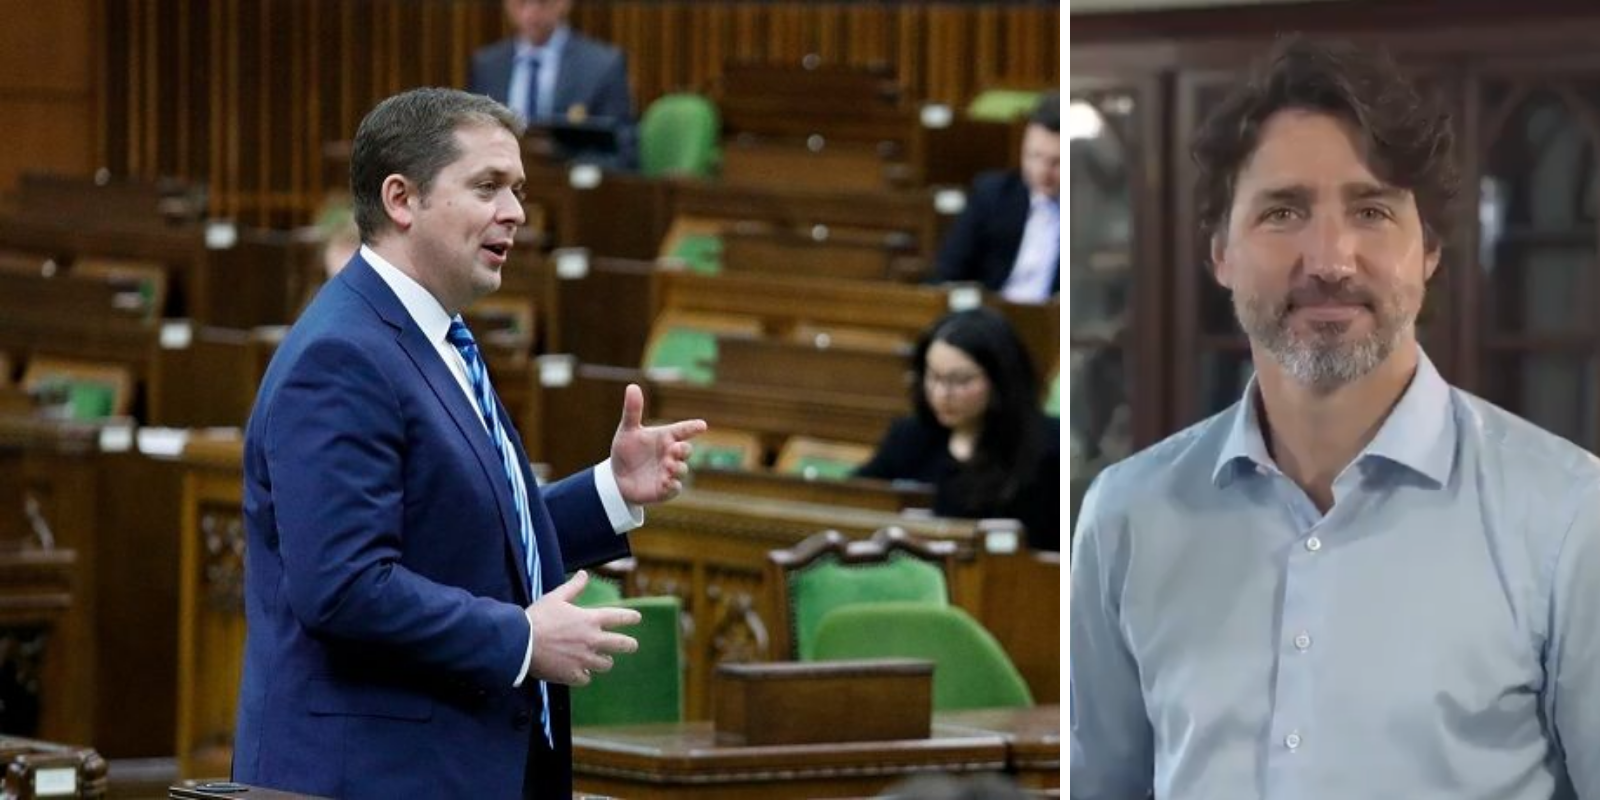 'Corruption, chaos, and cover-ups': Scheer calls out Trudeau's 'disgusting' attempt to mask his corruption